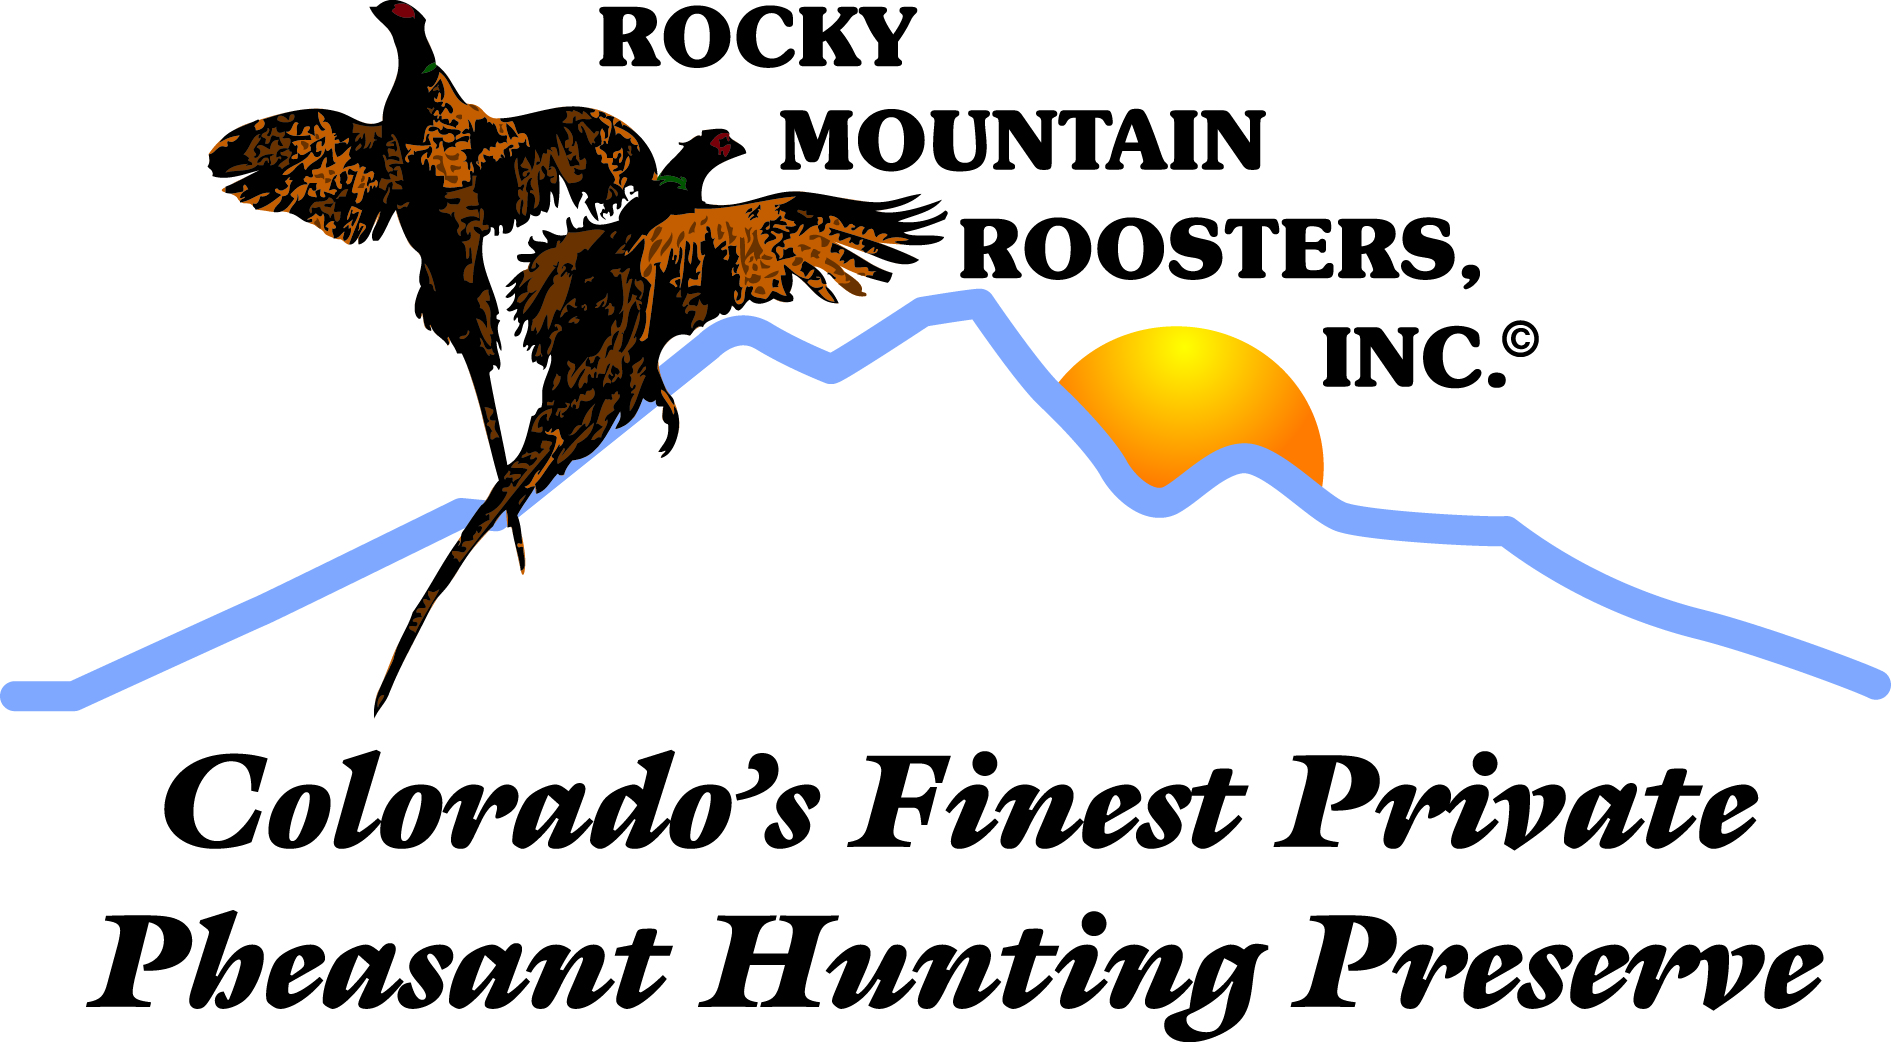 Rocky Mountain Roosters